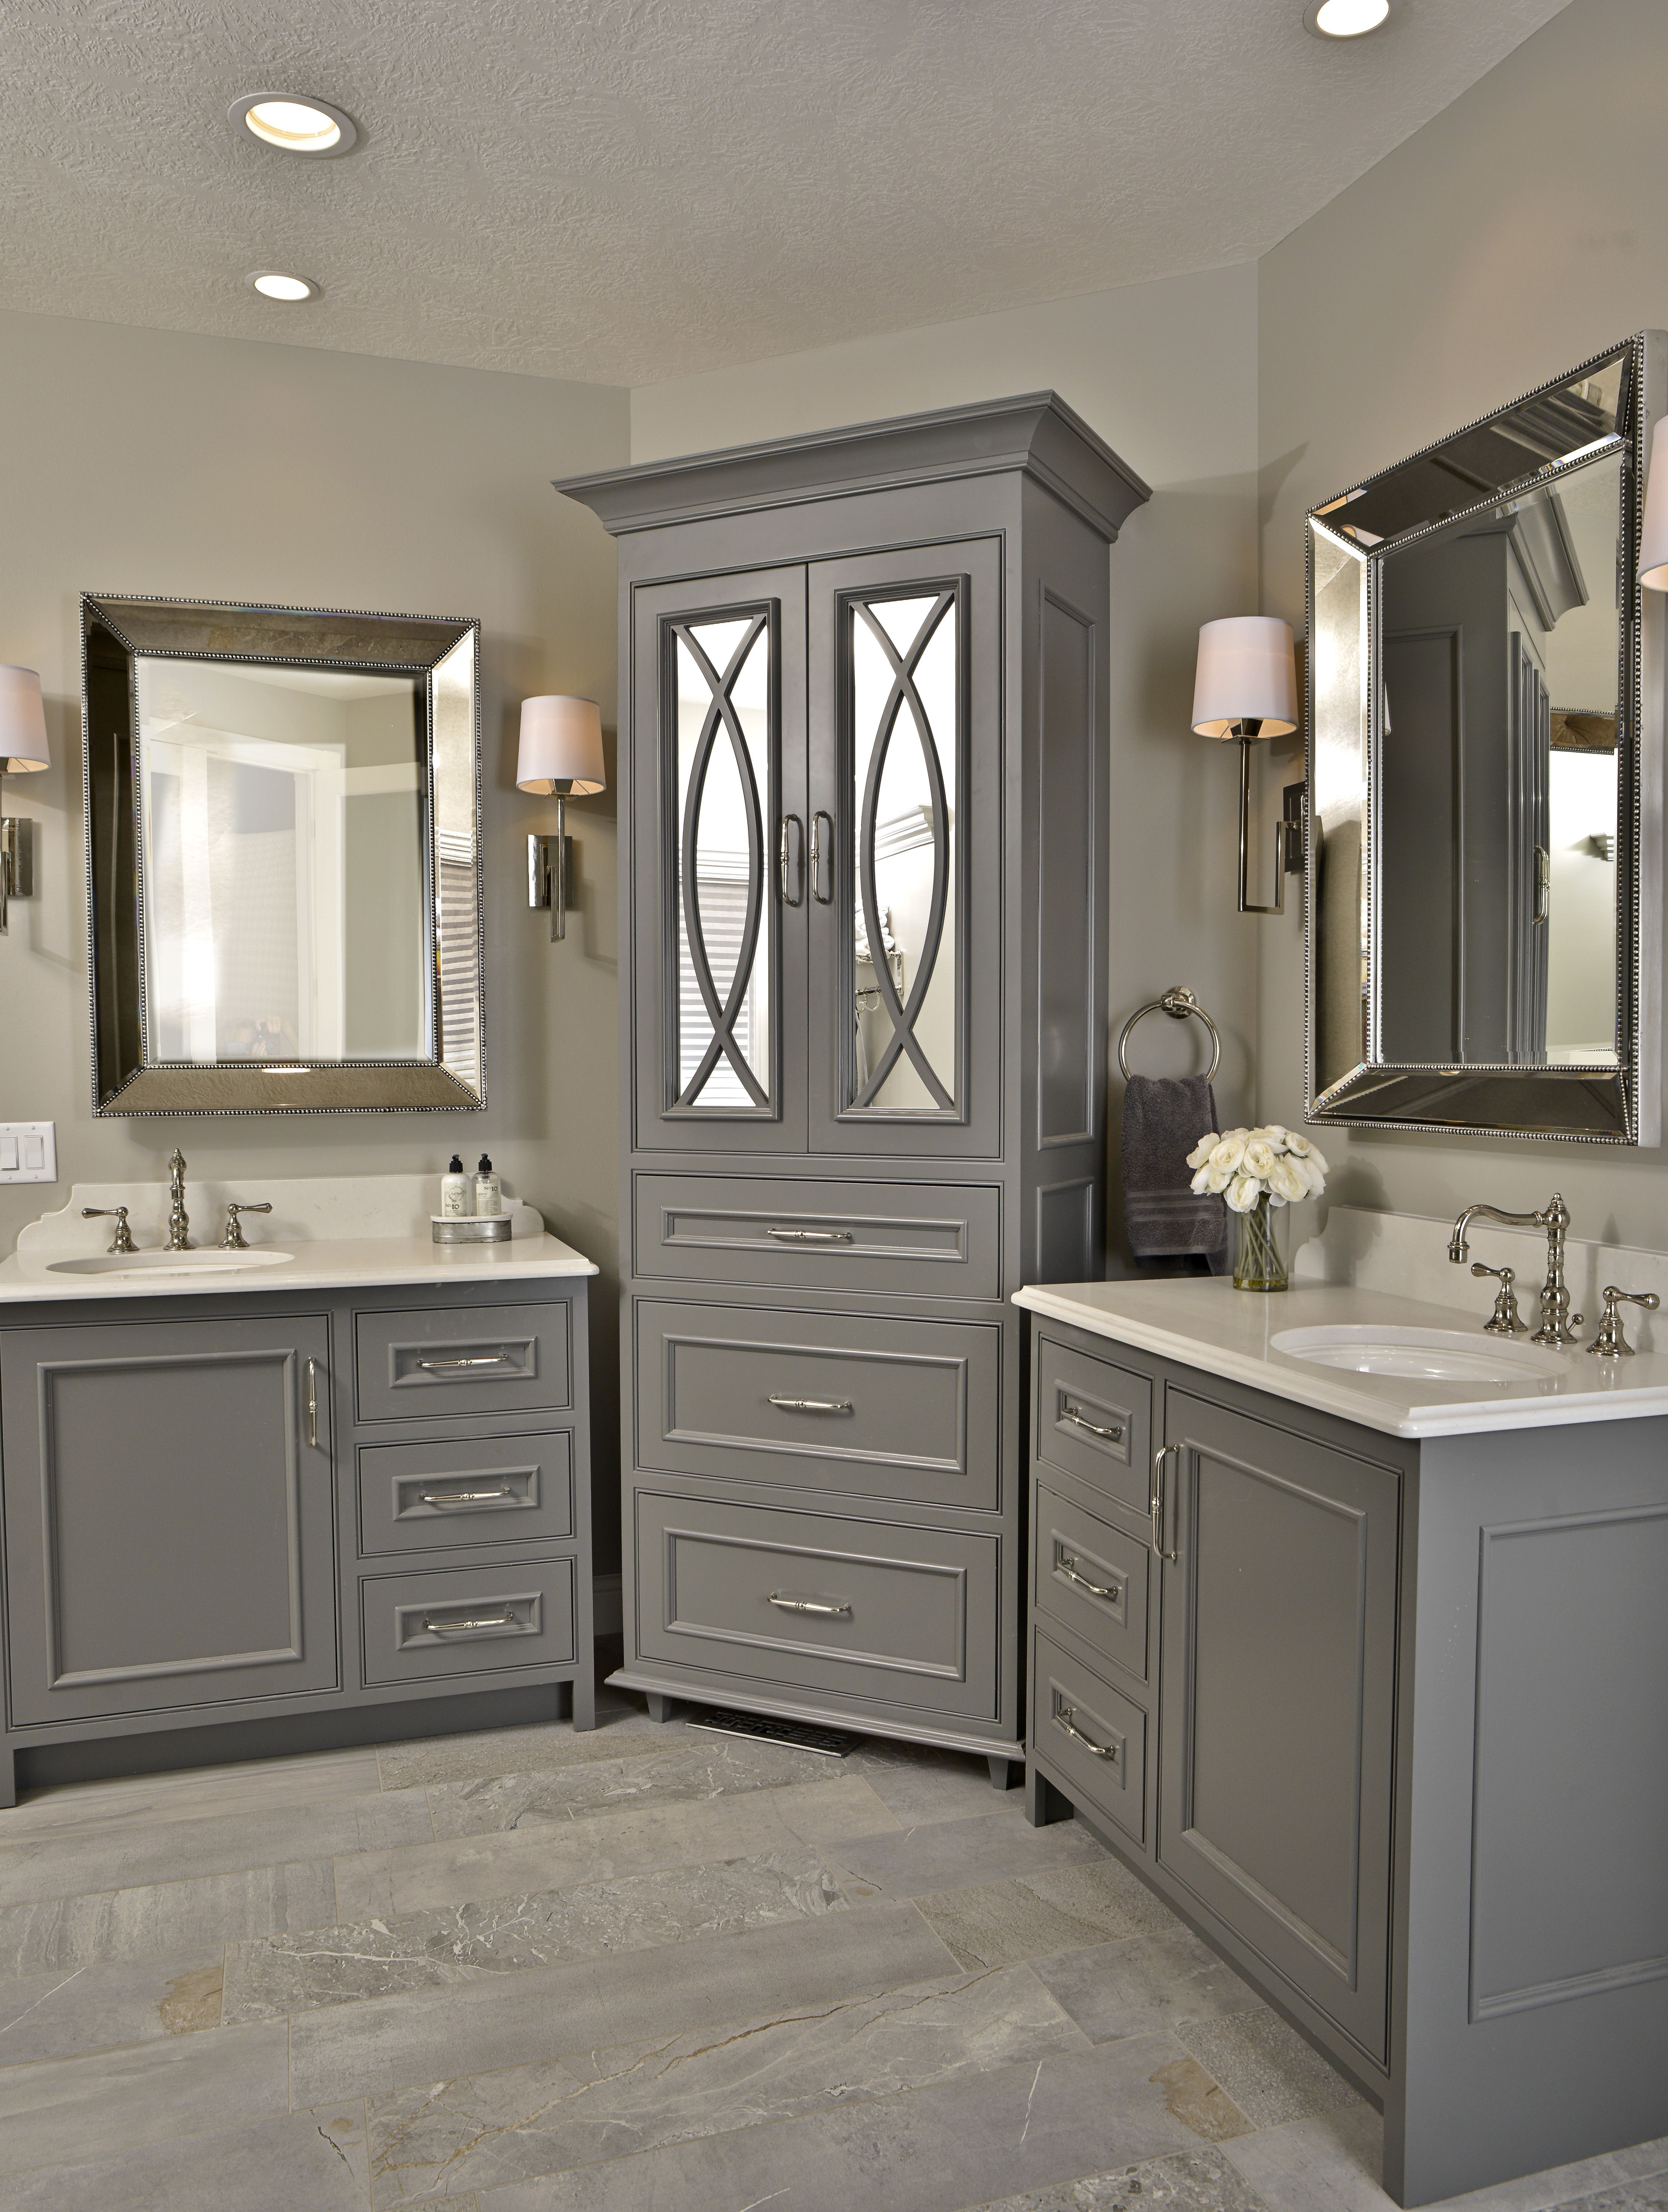 7 Bathroom Cabinet Ideas For Your